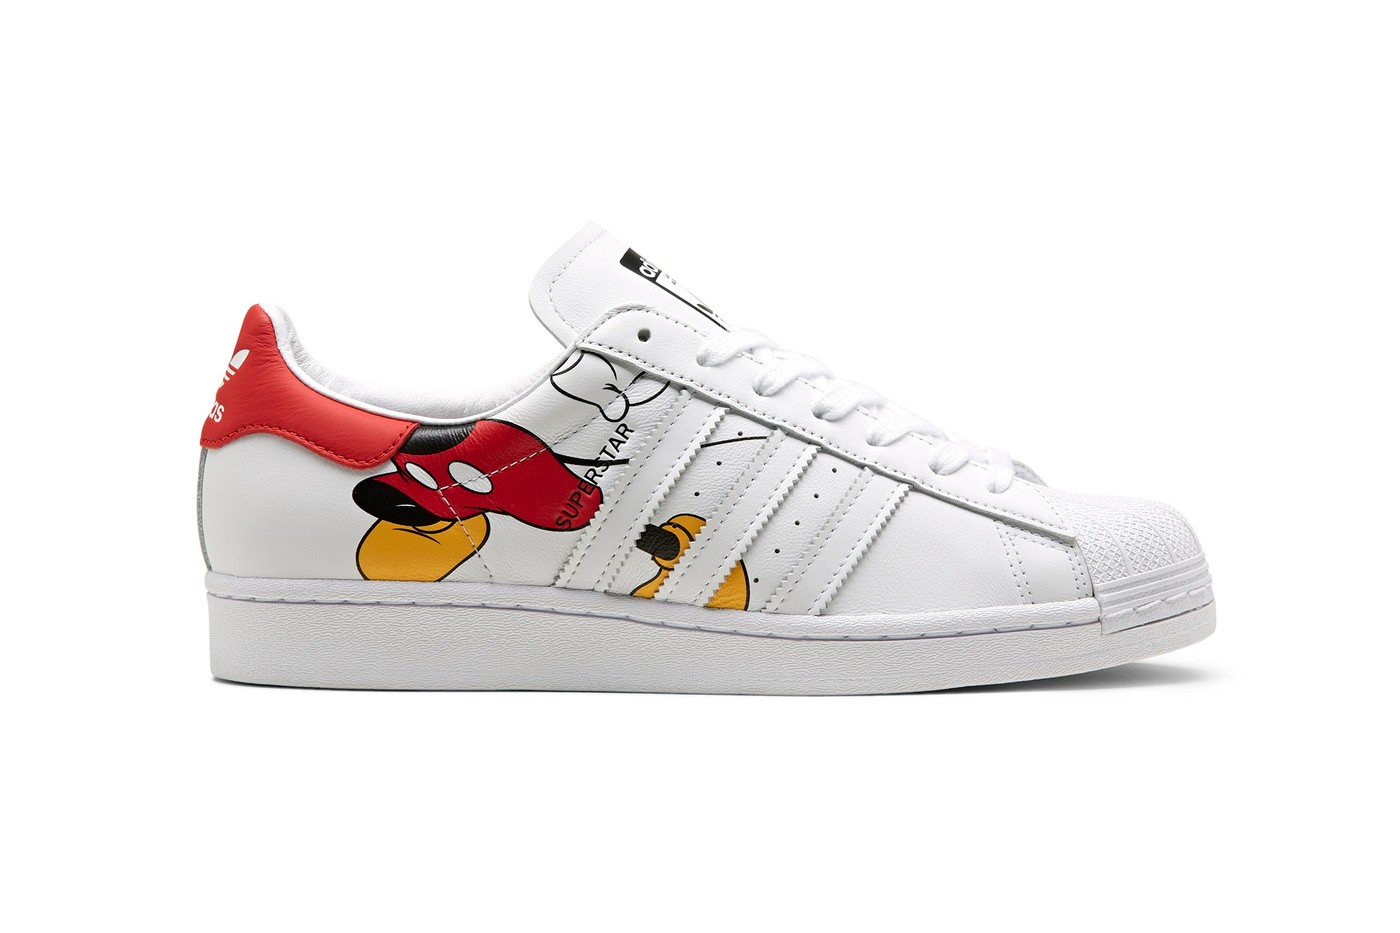 adidas originals mickey mouse pack(5)